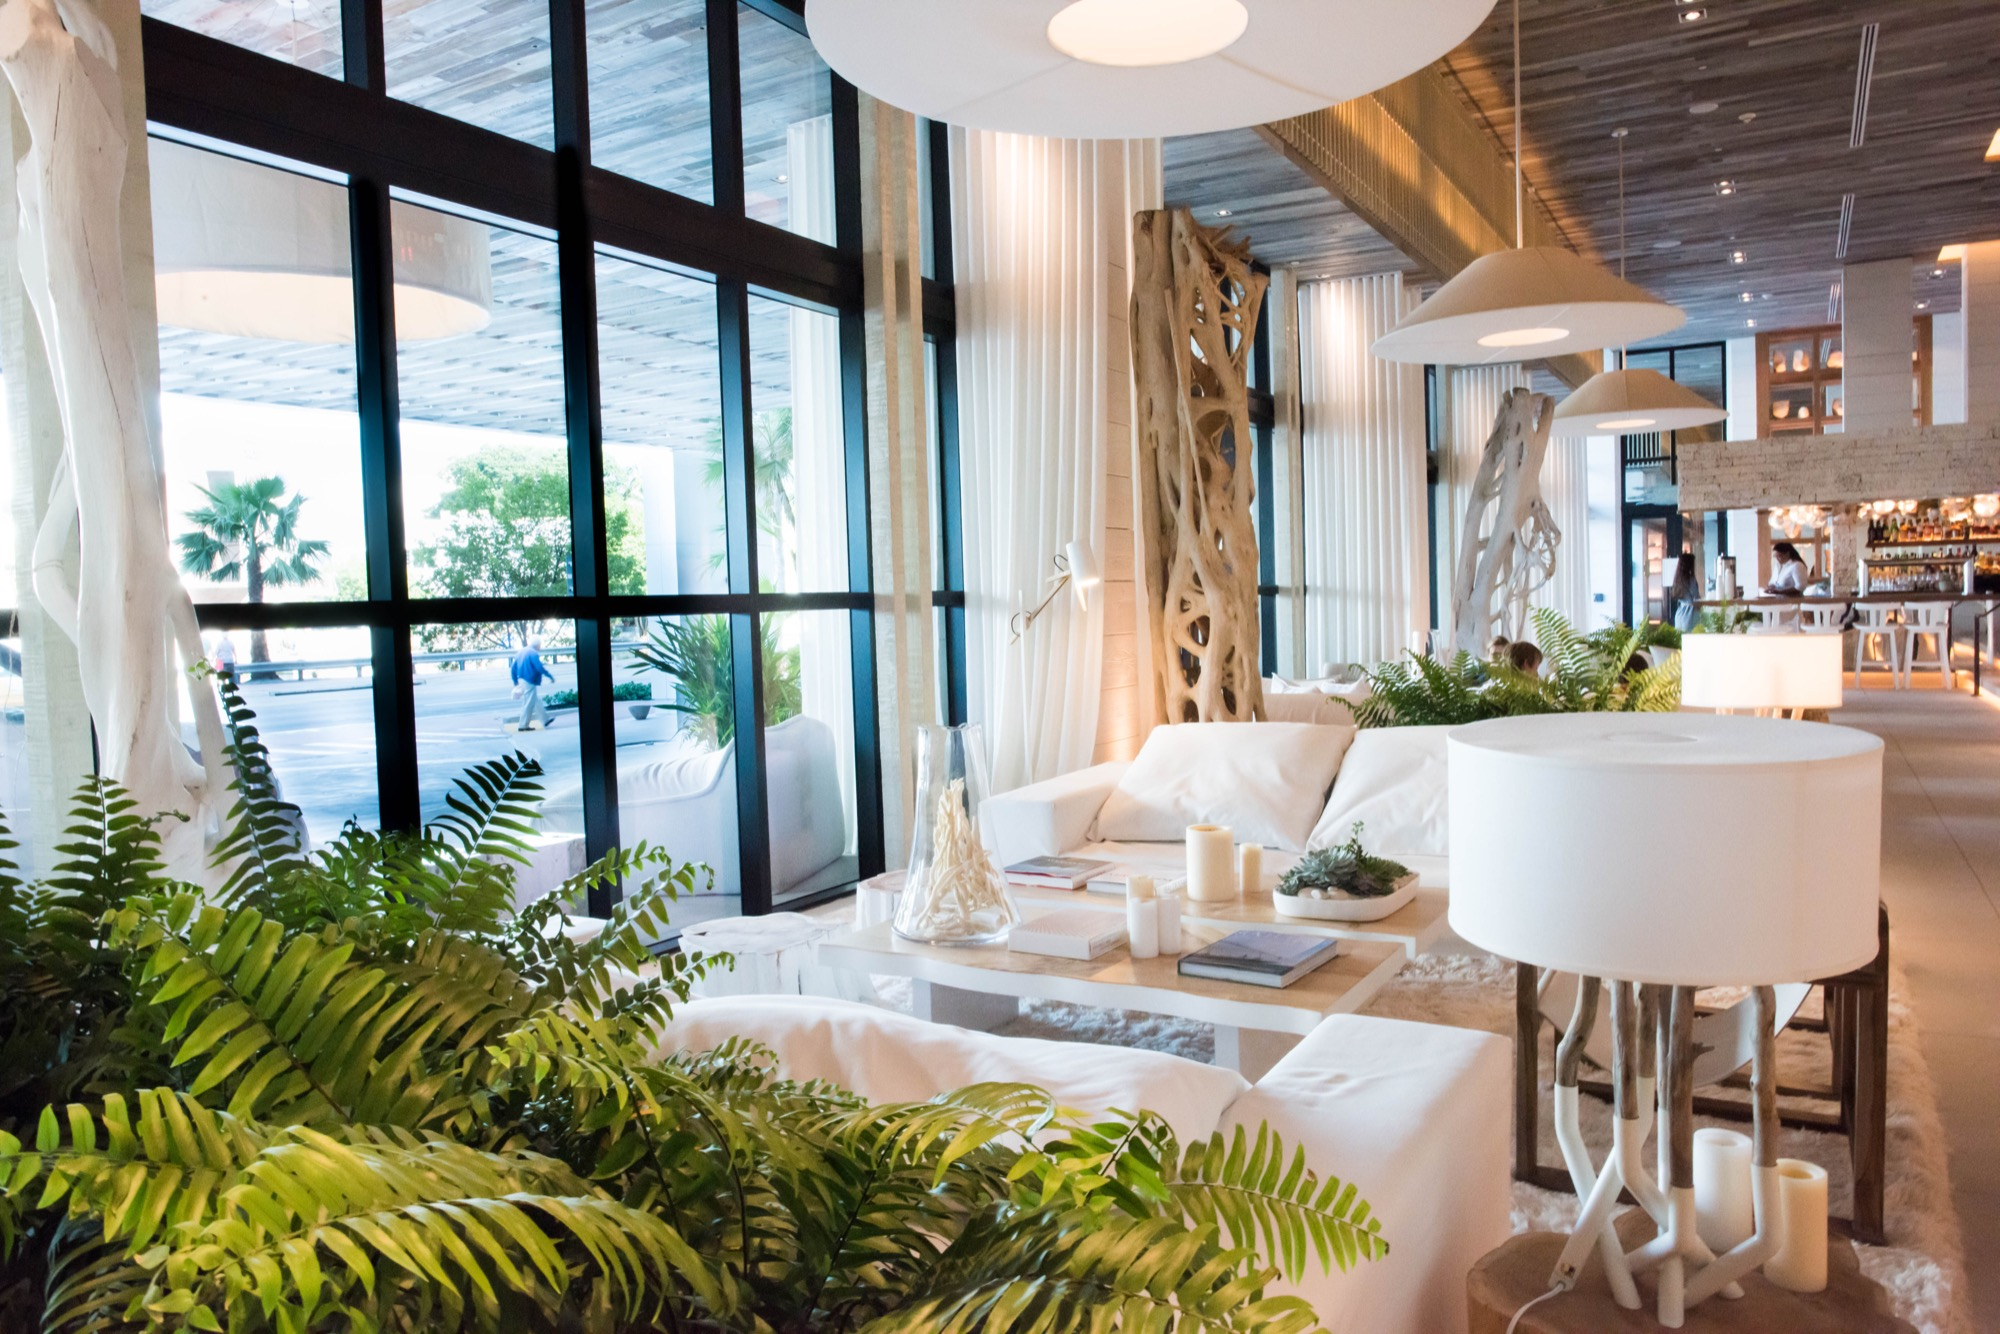 Ecolux at 1 Hotel's South Beach location. Image credit 1 Hotels